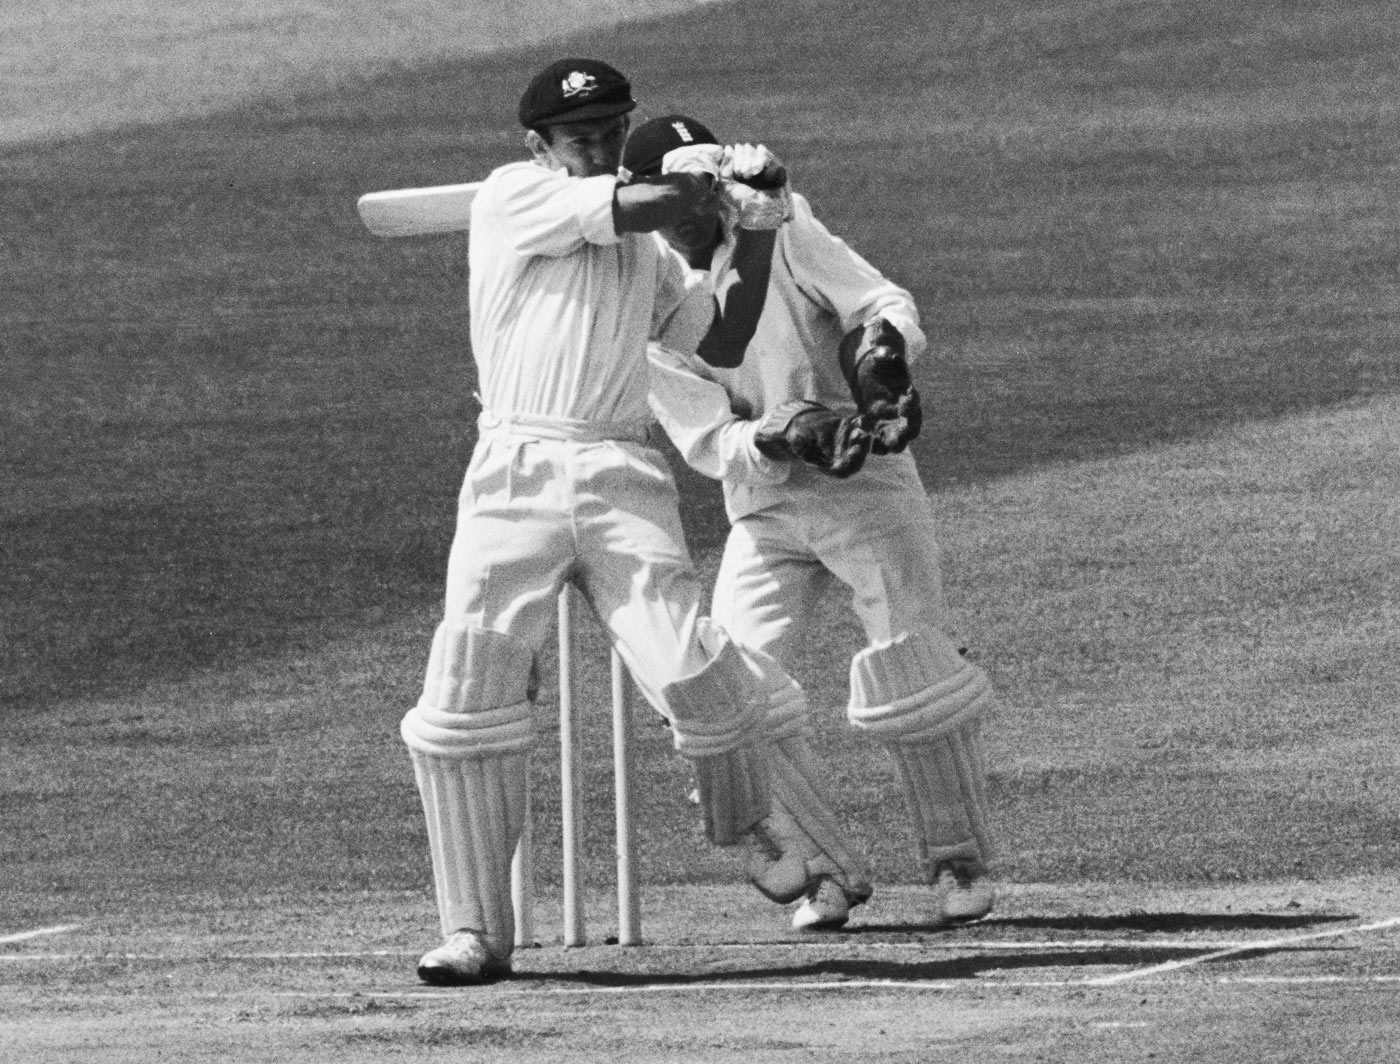 Bad pitch? Batting collapse? Walters knew only one way to play